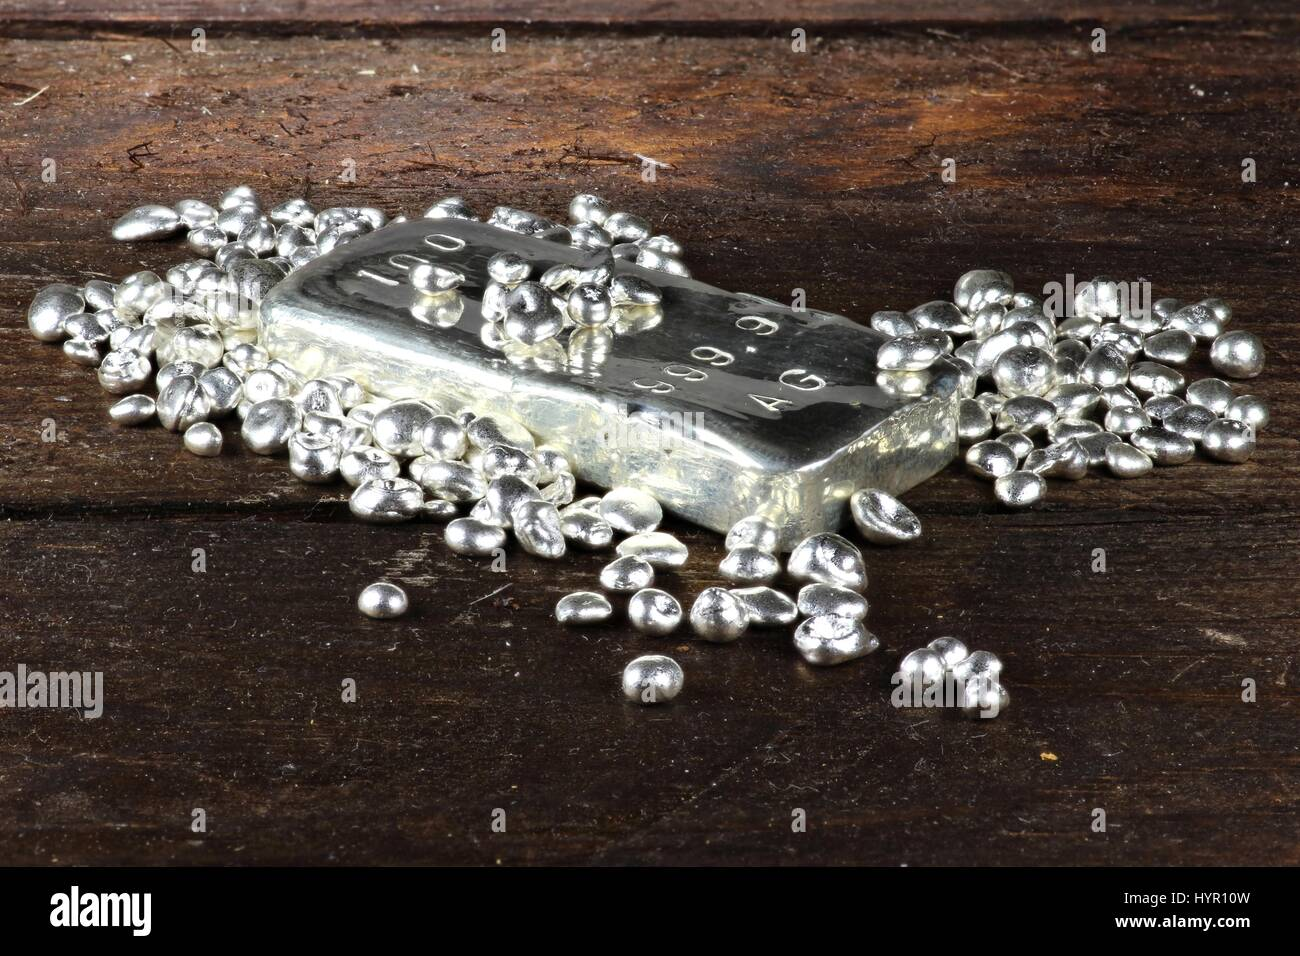 silver ingot and granules on wooden background - Stock Image